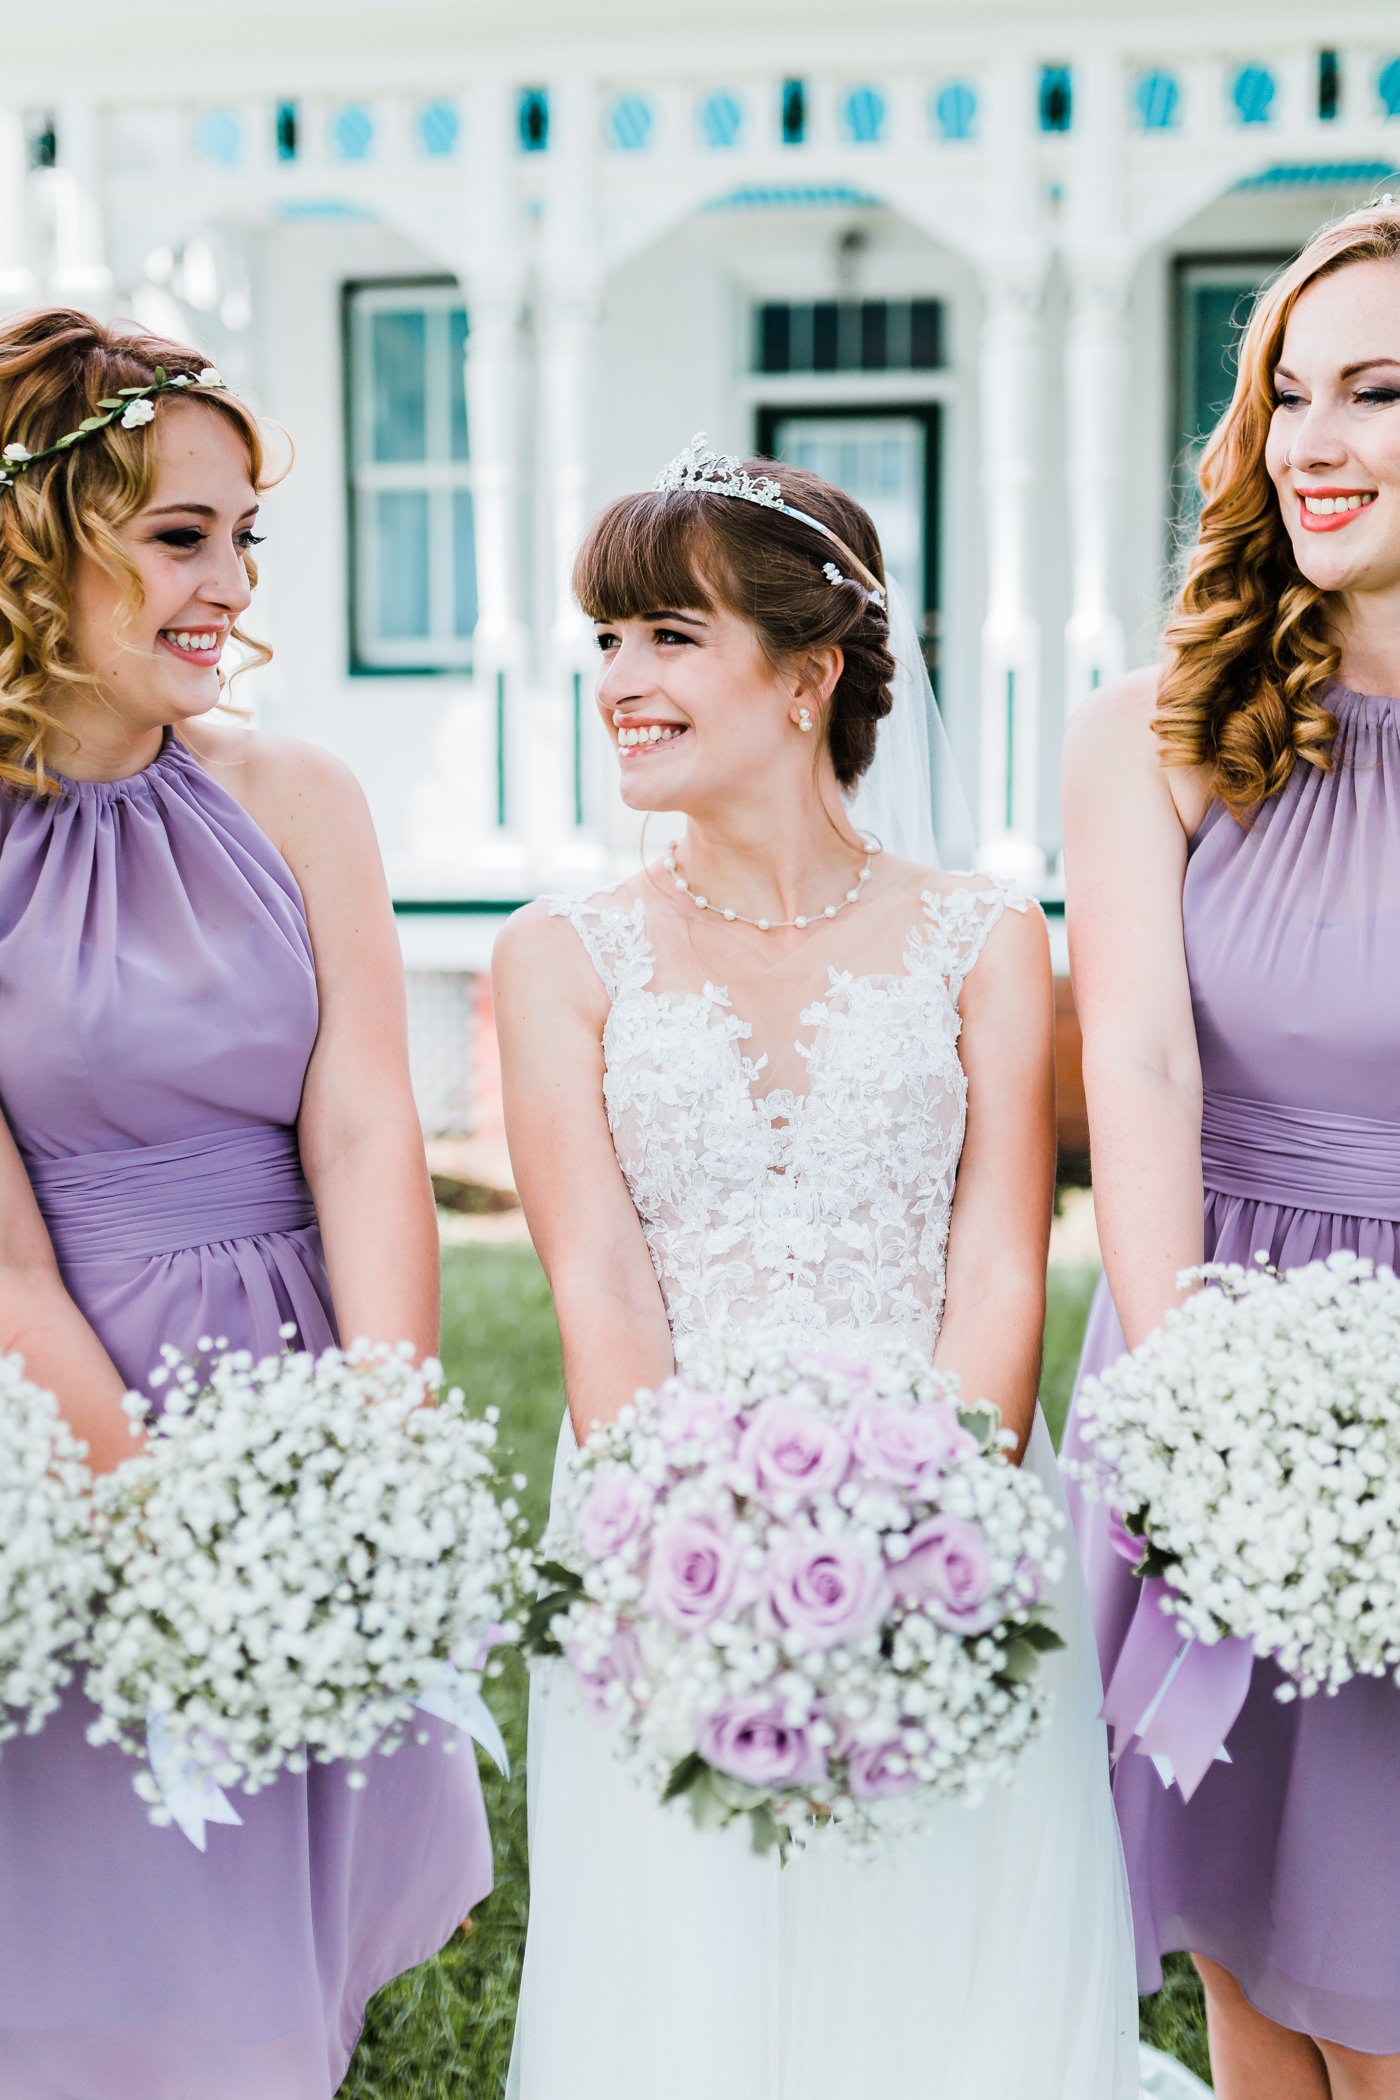 bride smiling at her maid of honor - maryland wedding venues - best md wedding photographer